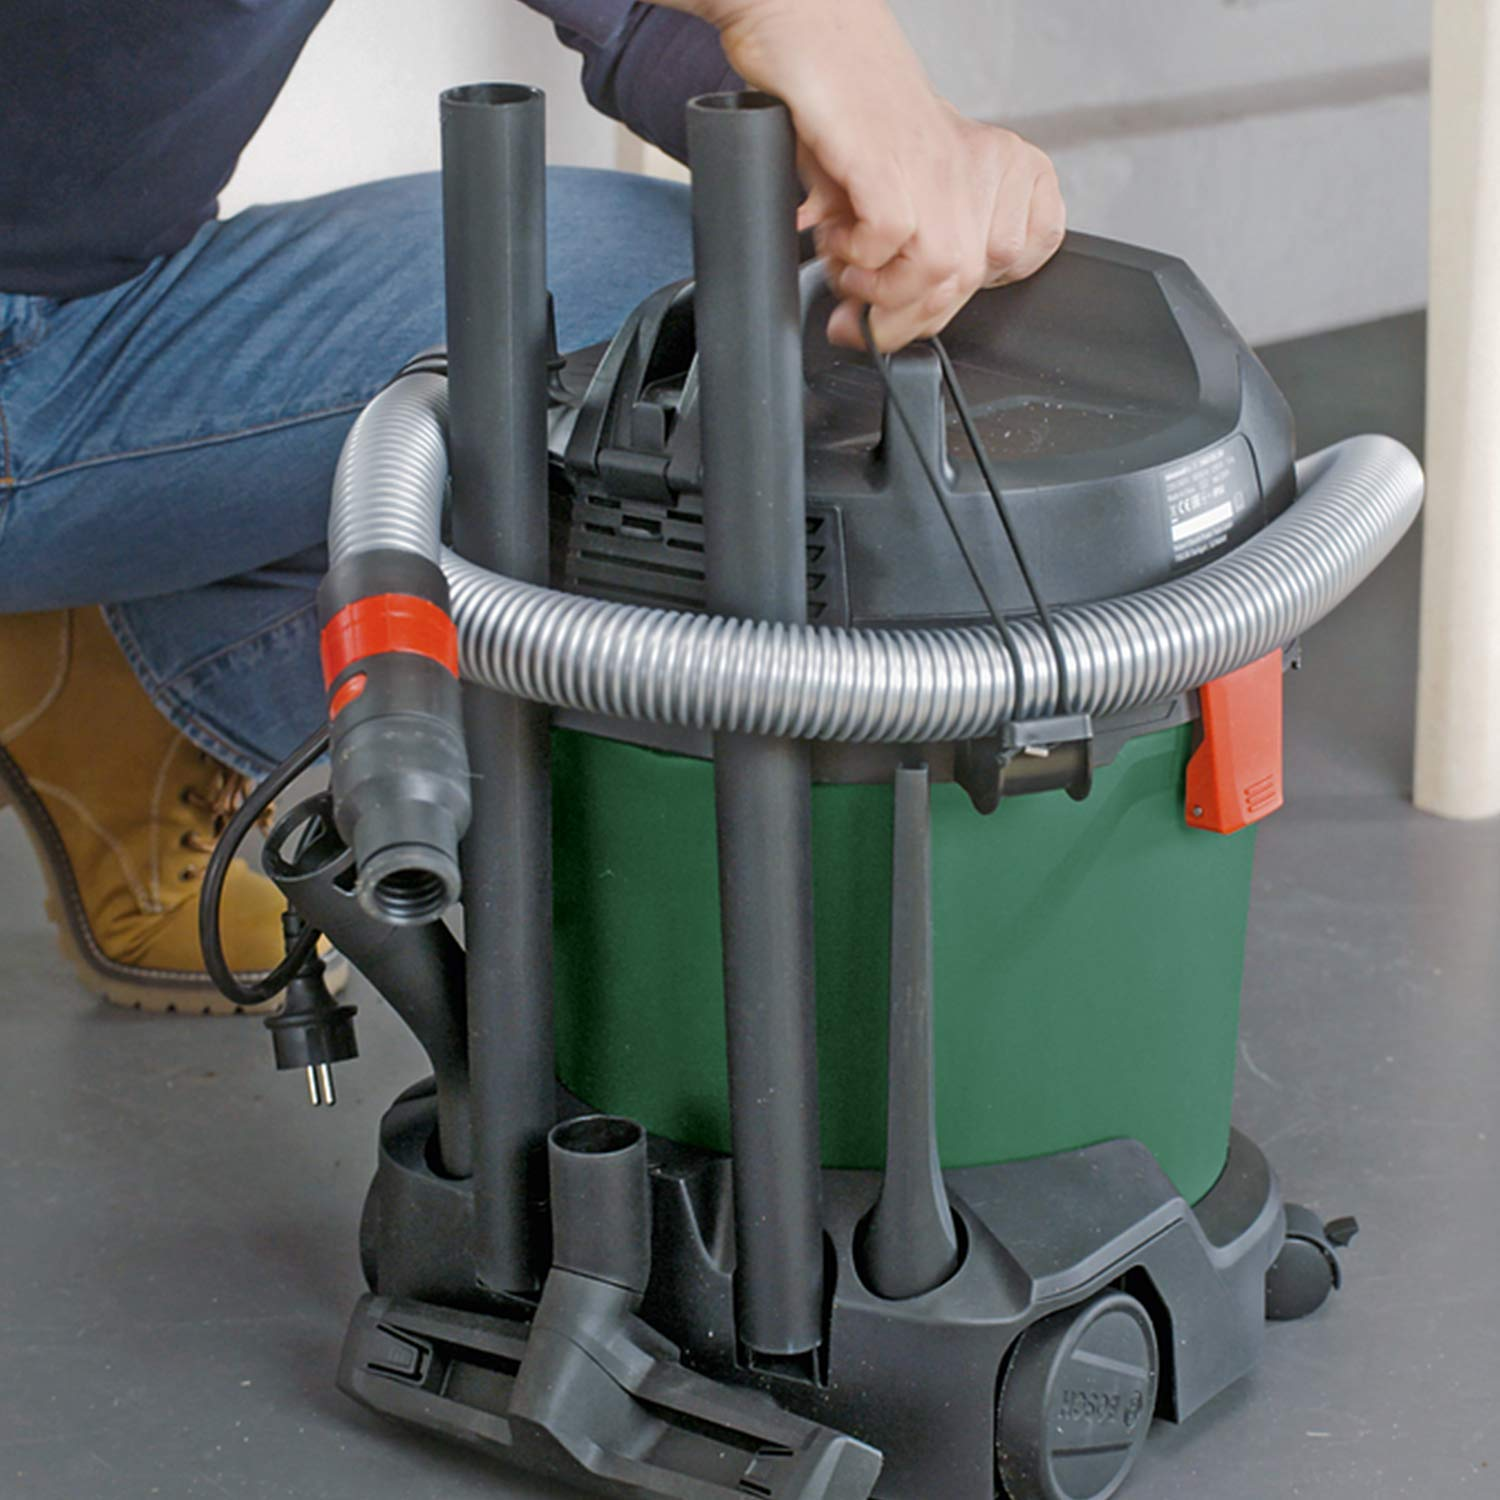 Bosch Advanced Vac 20 Wet And Dry Vacuum Cleaner 230v